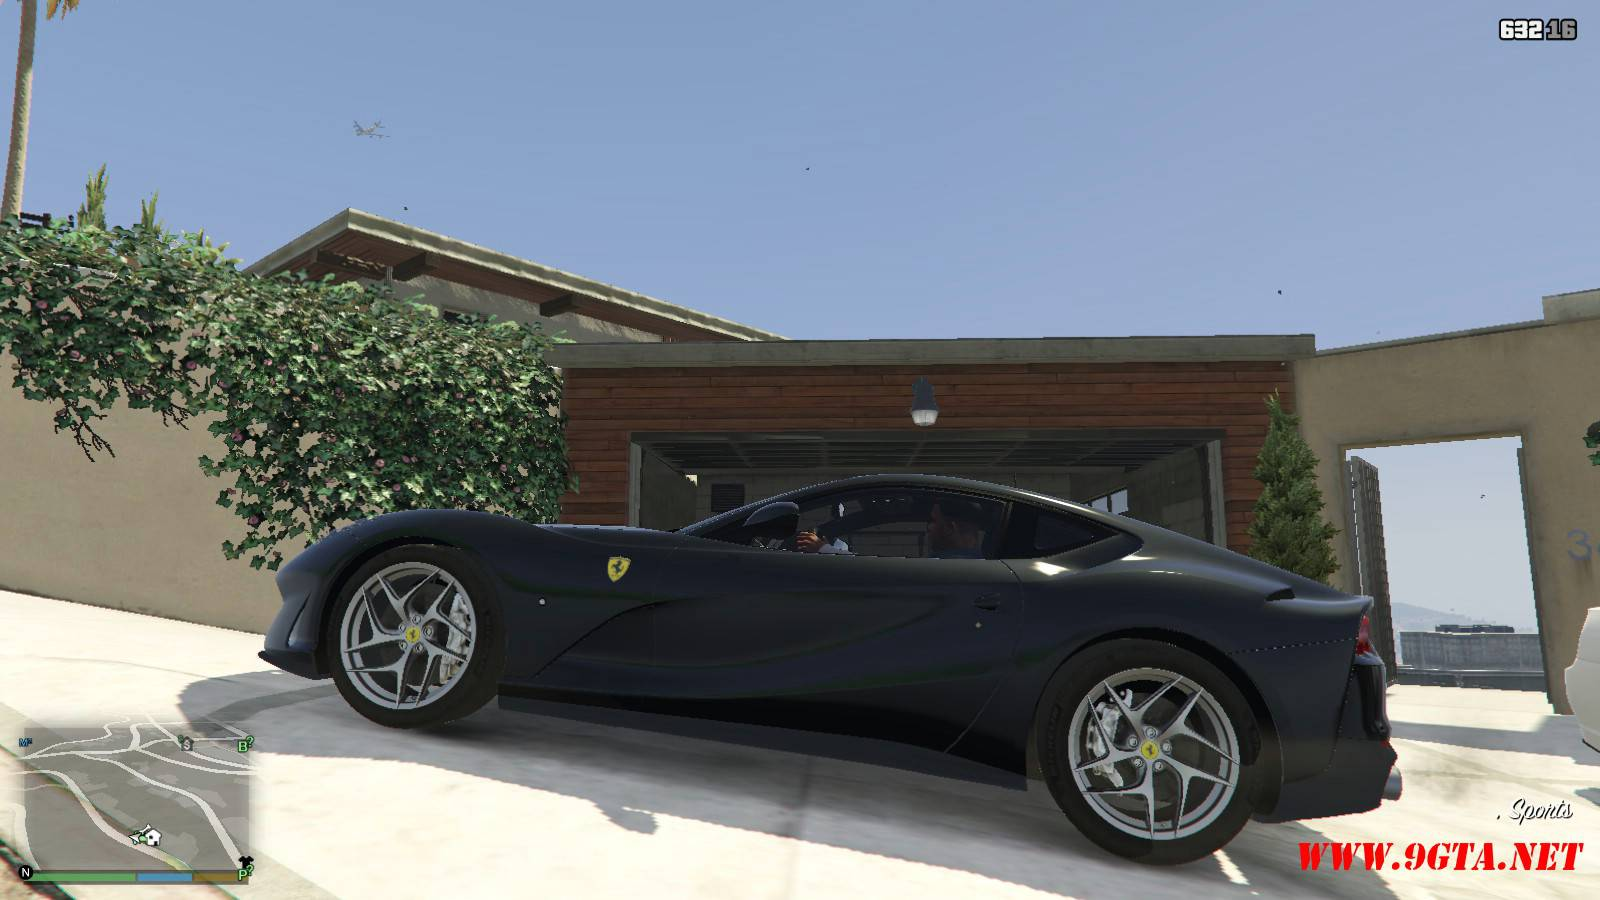 2018 Ferrari 812 Superfast Mod For GTA5 (2)